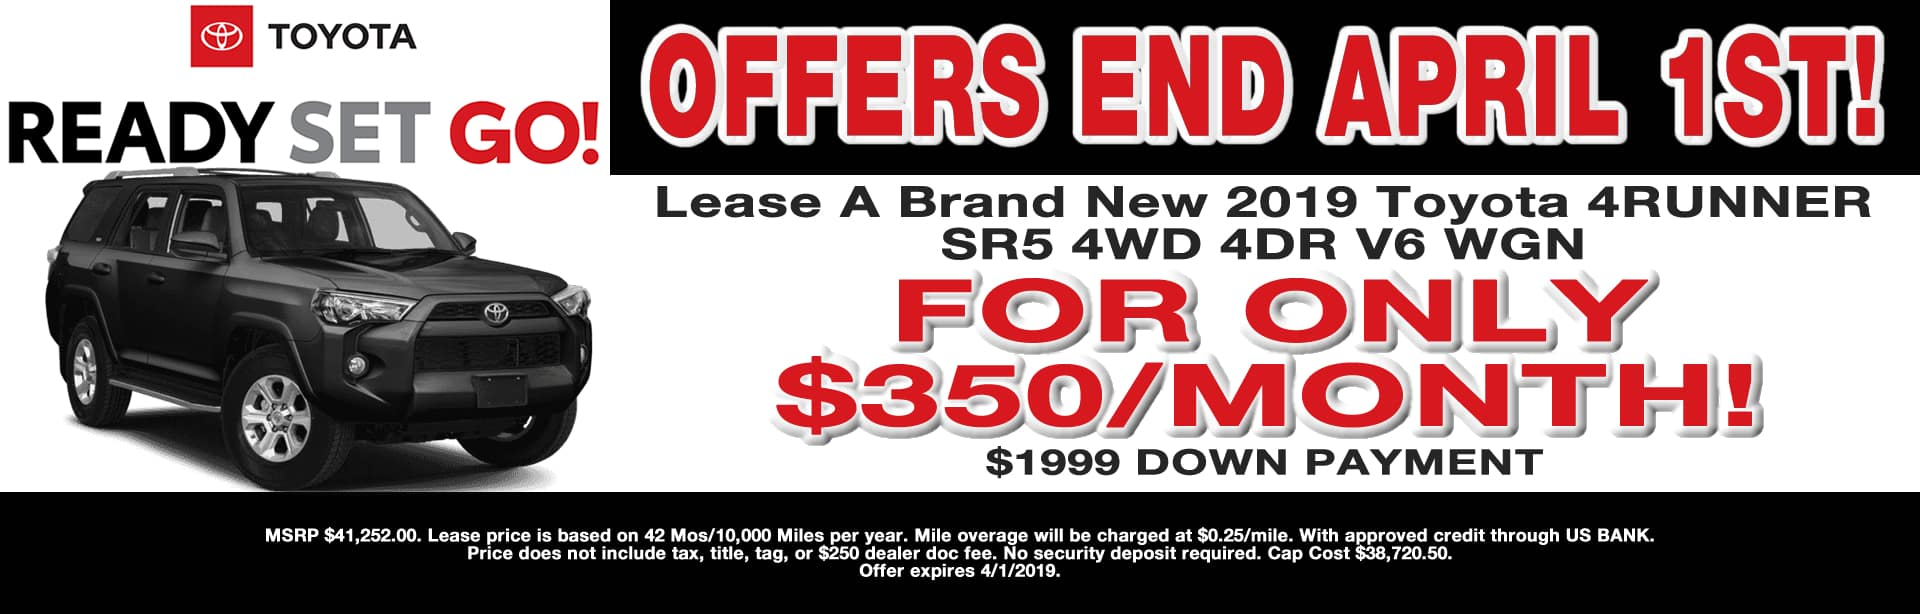 4RUNNER LEASE SPECIAL CAIN TOYOTA NORTH CANTON OHIO